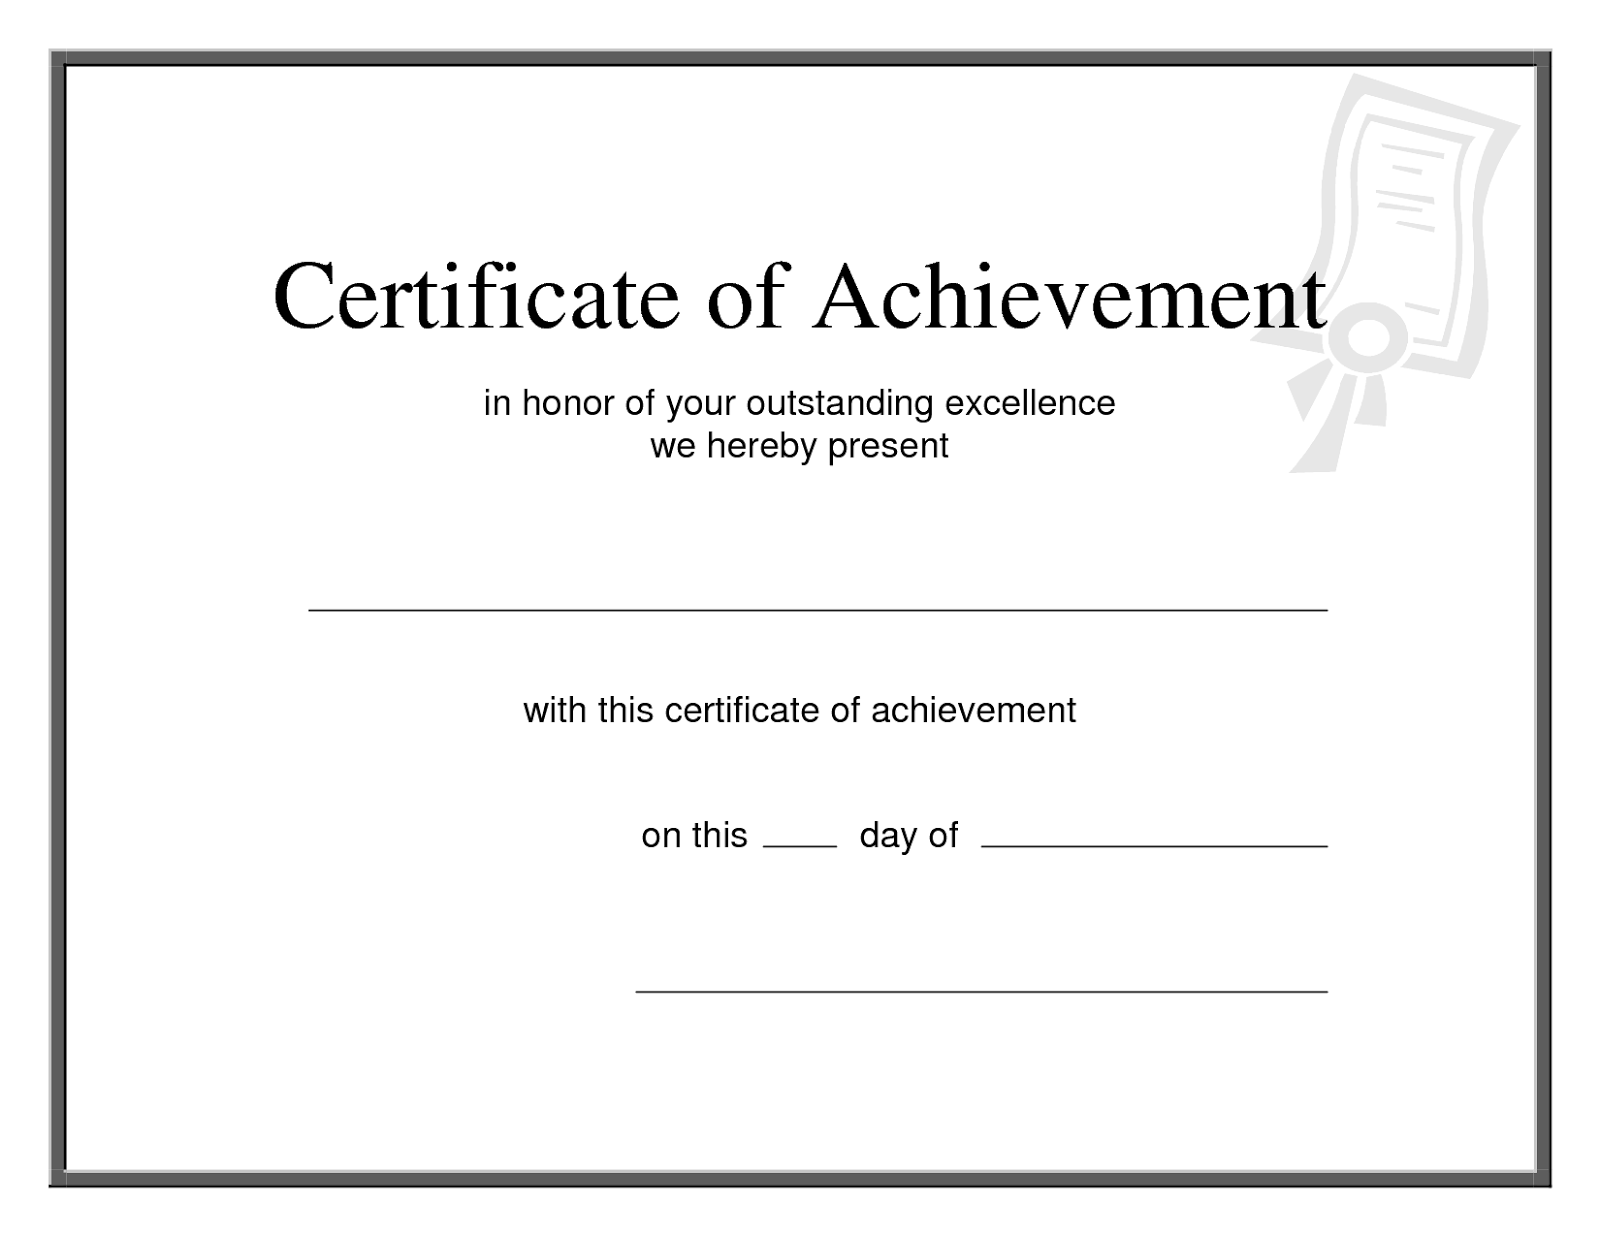 Word certificate template lease templates free word certificate templates image collections templates example word certificate of achievement template 8 word certificate templateshtml xflitez Image collections